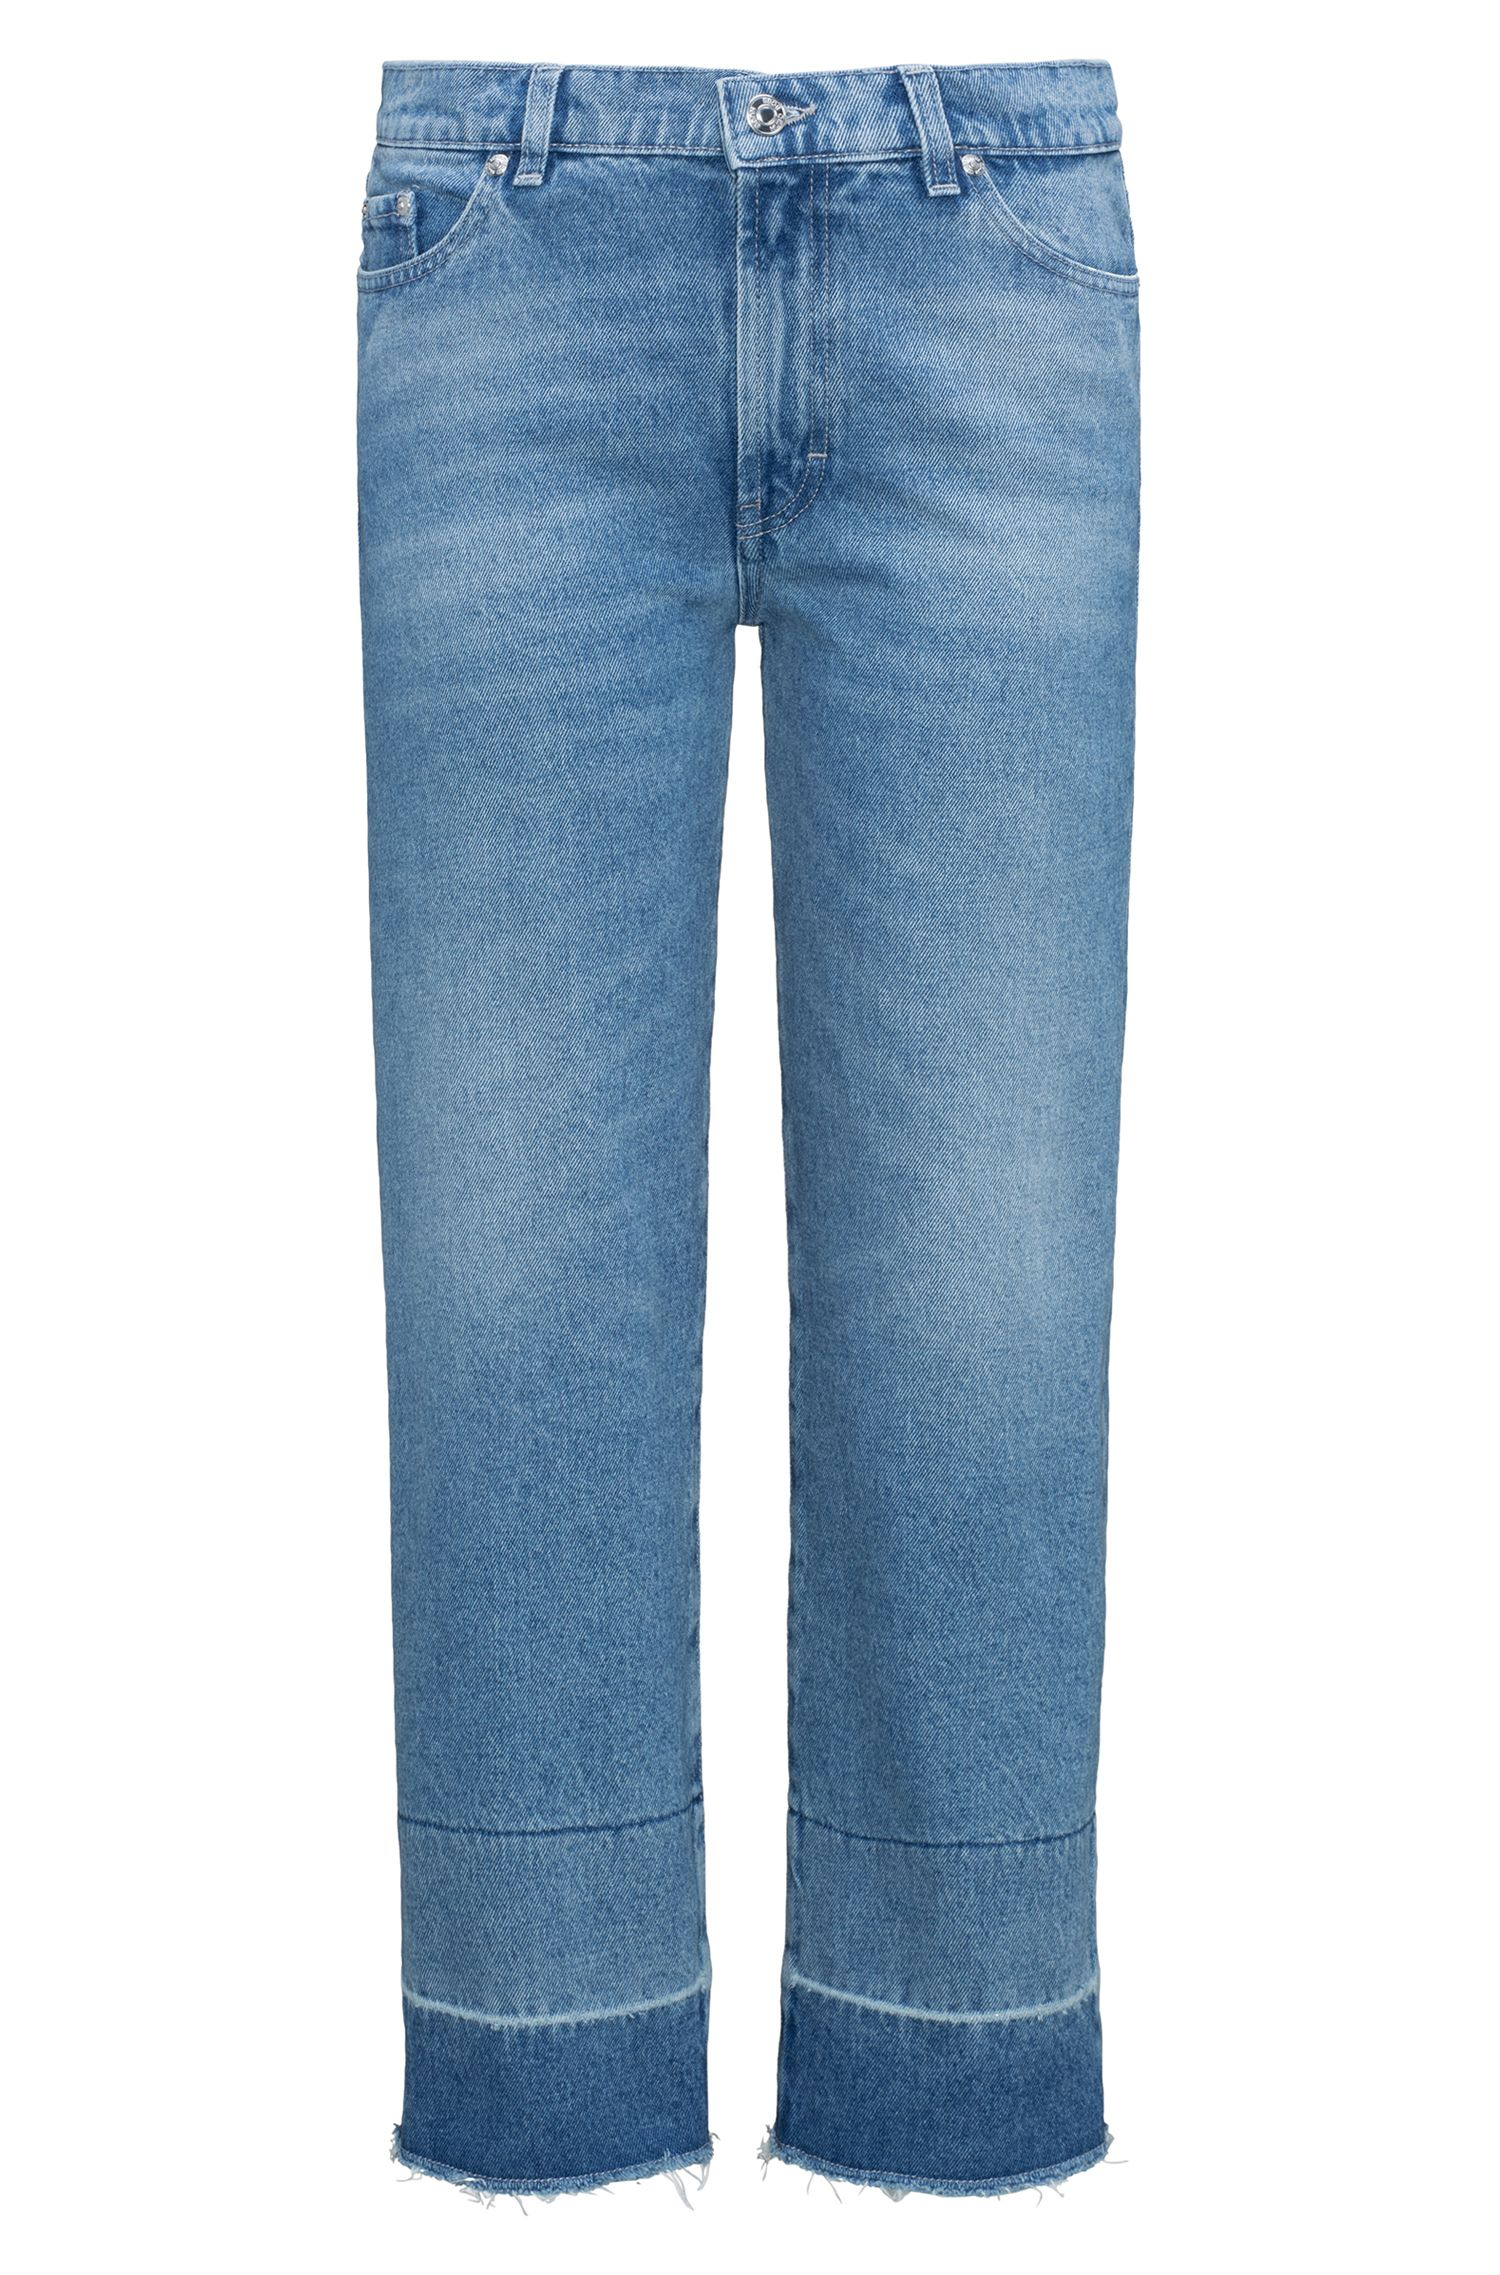 Jeans slim fit alla caviglia in denim stonewashed